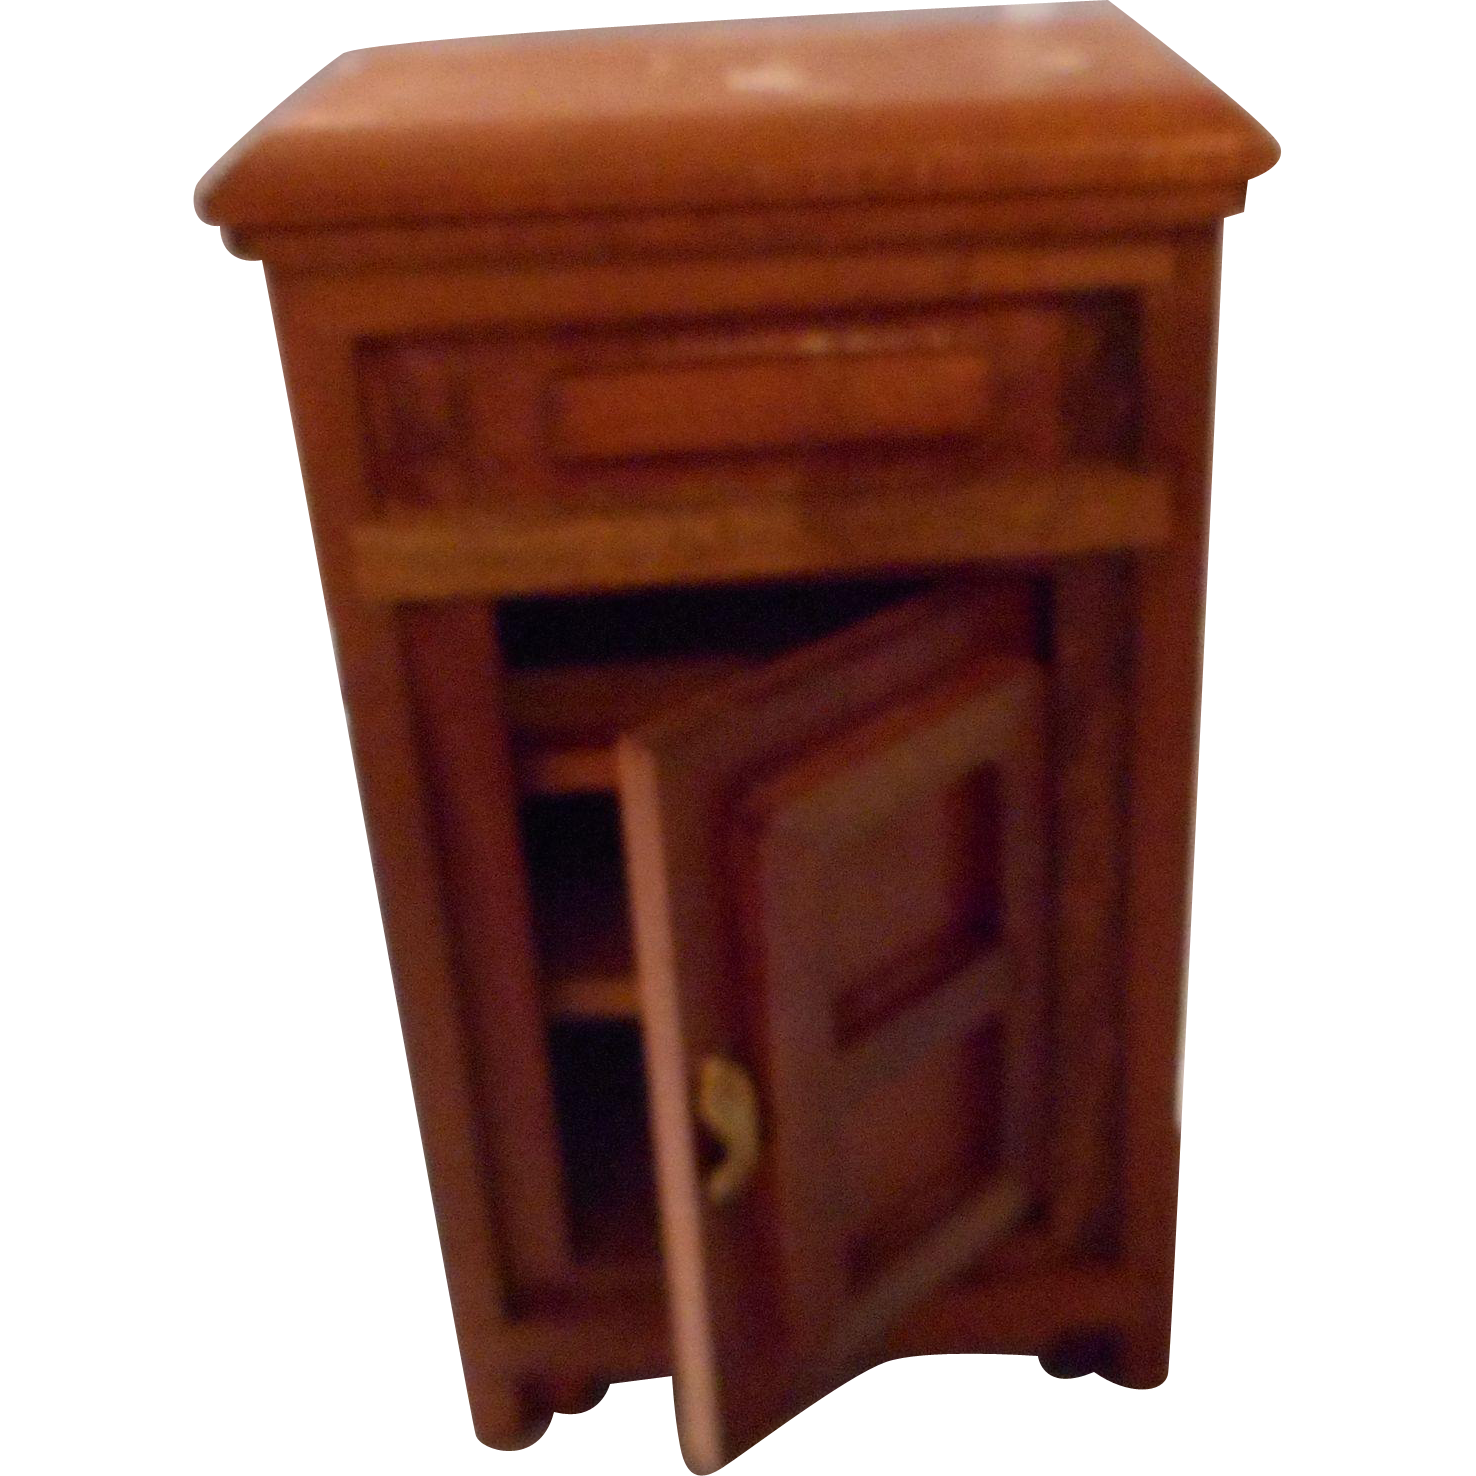 wooden doll house vintage wooden doll furniture dreamz bathroom dollhouse